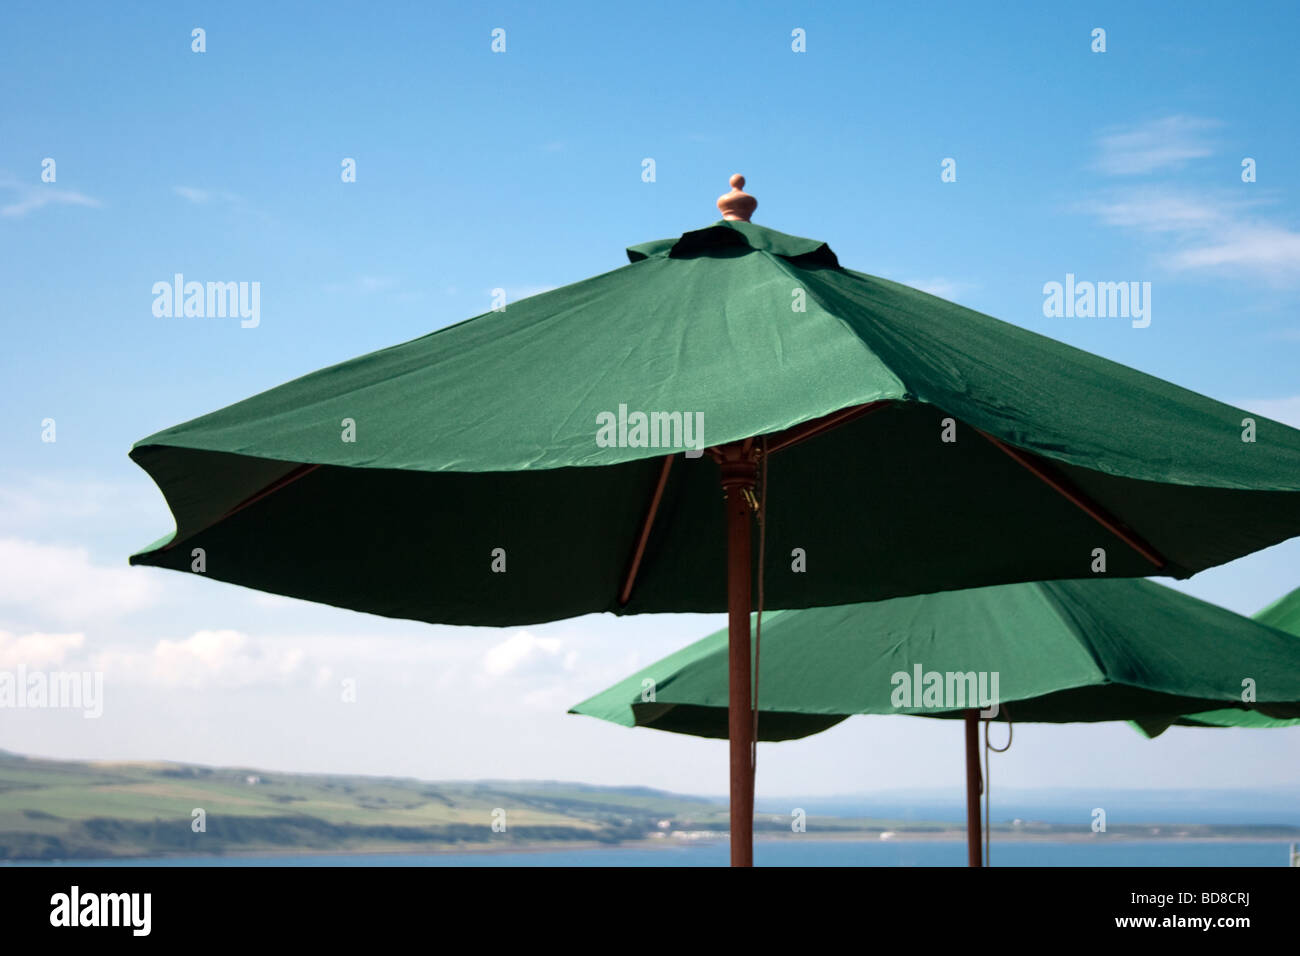 Parasols by the Coast - Stock Image